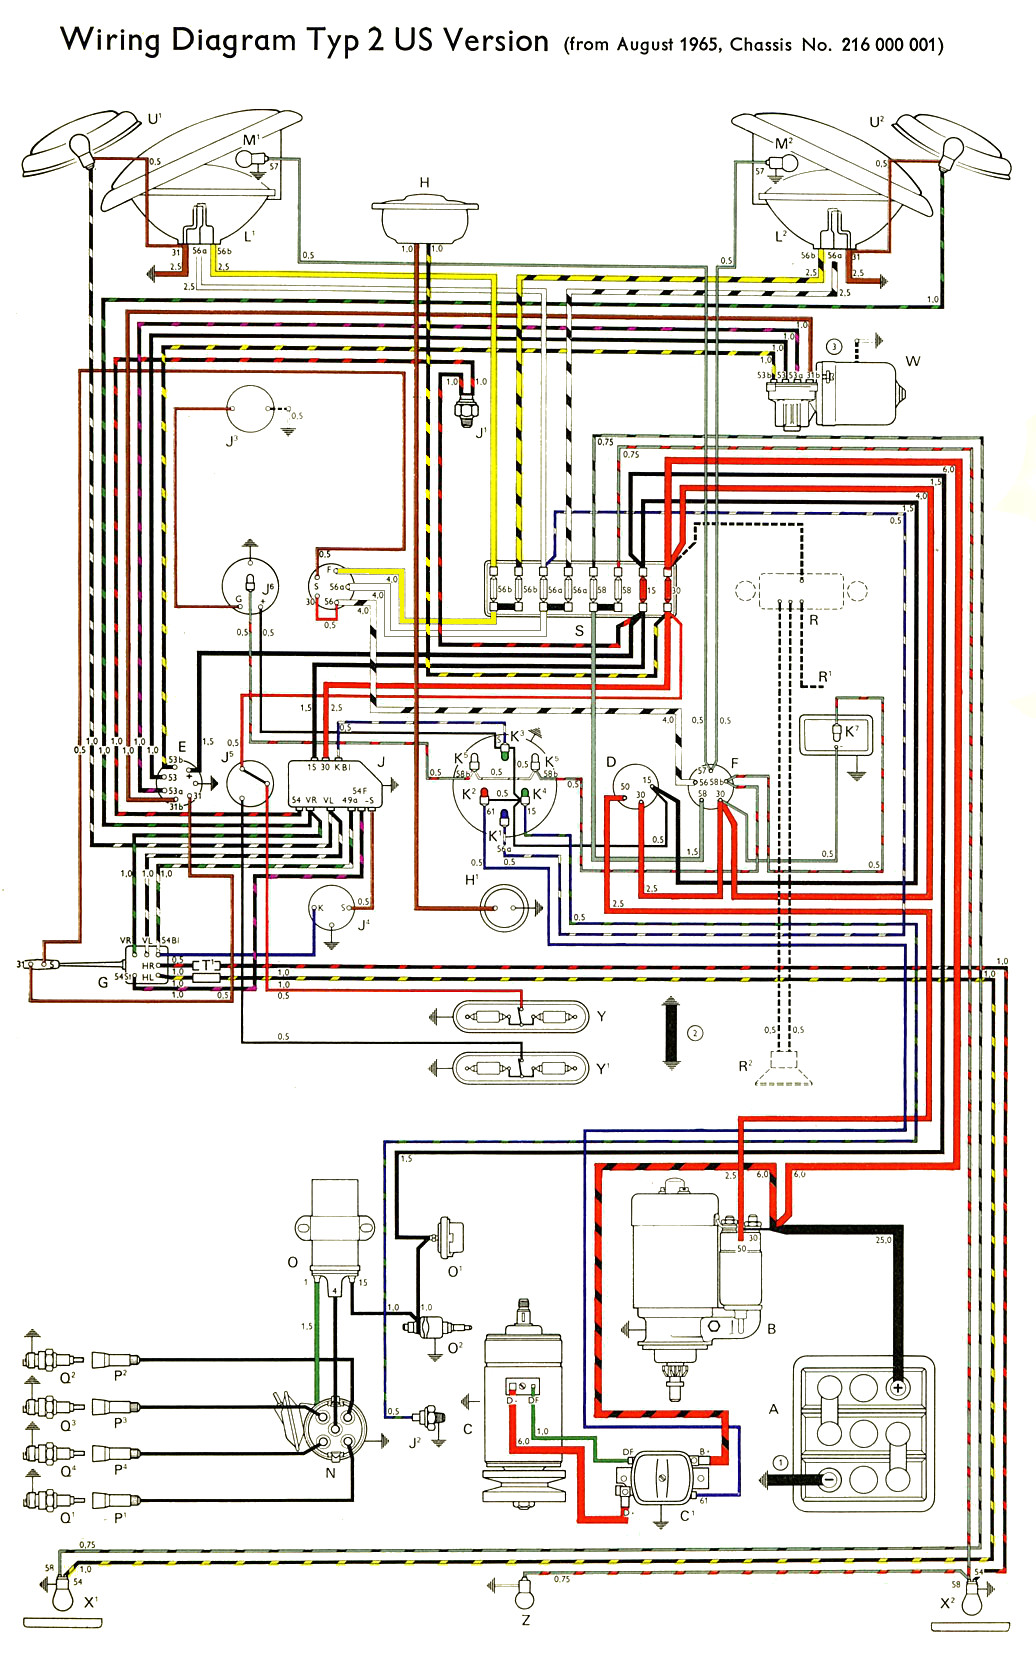 bus_66_USA thesamba com type 2 wiring diagrams  at honlapkeszites.co